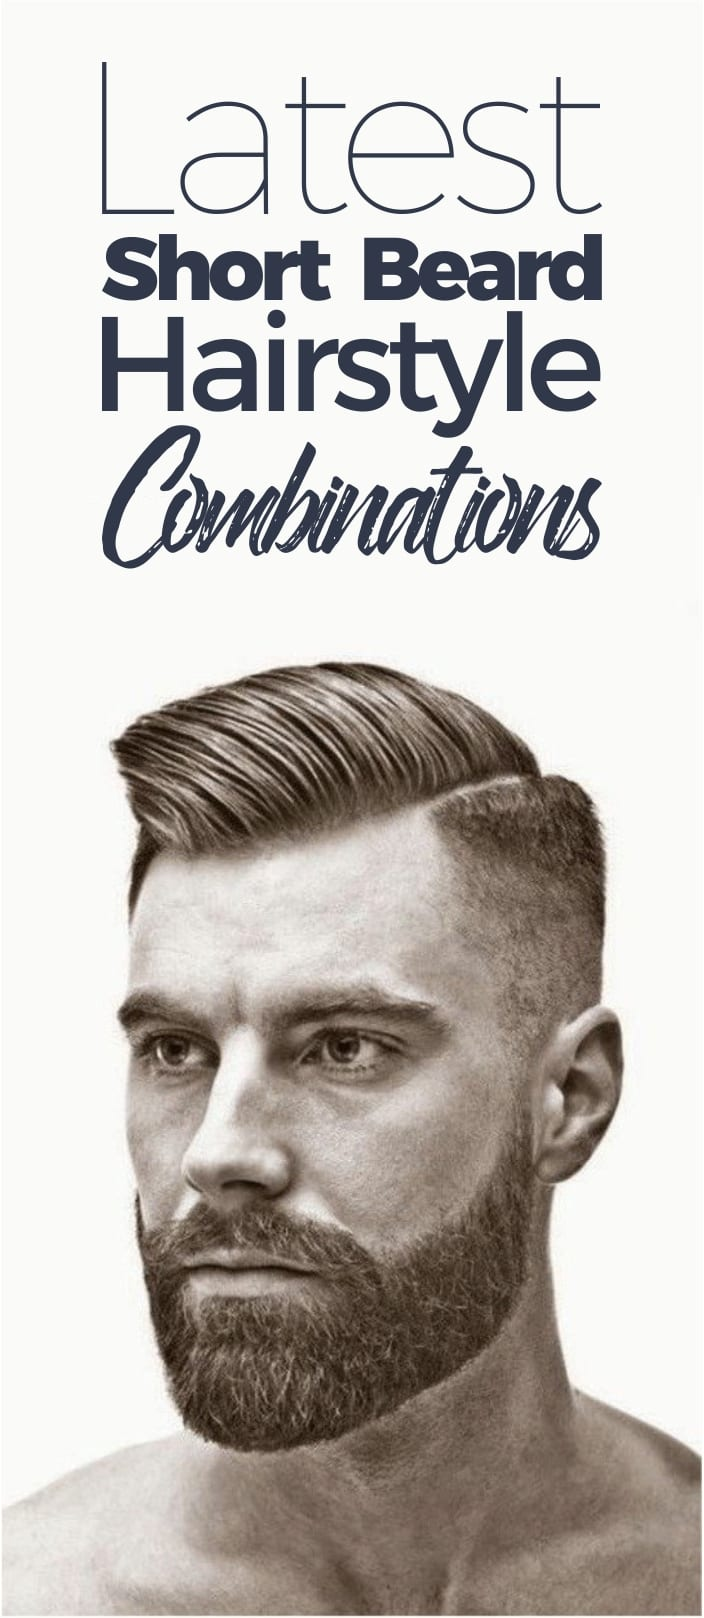 latest short beard and hairstyle combination for men in 2019 2018